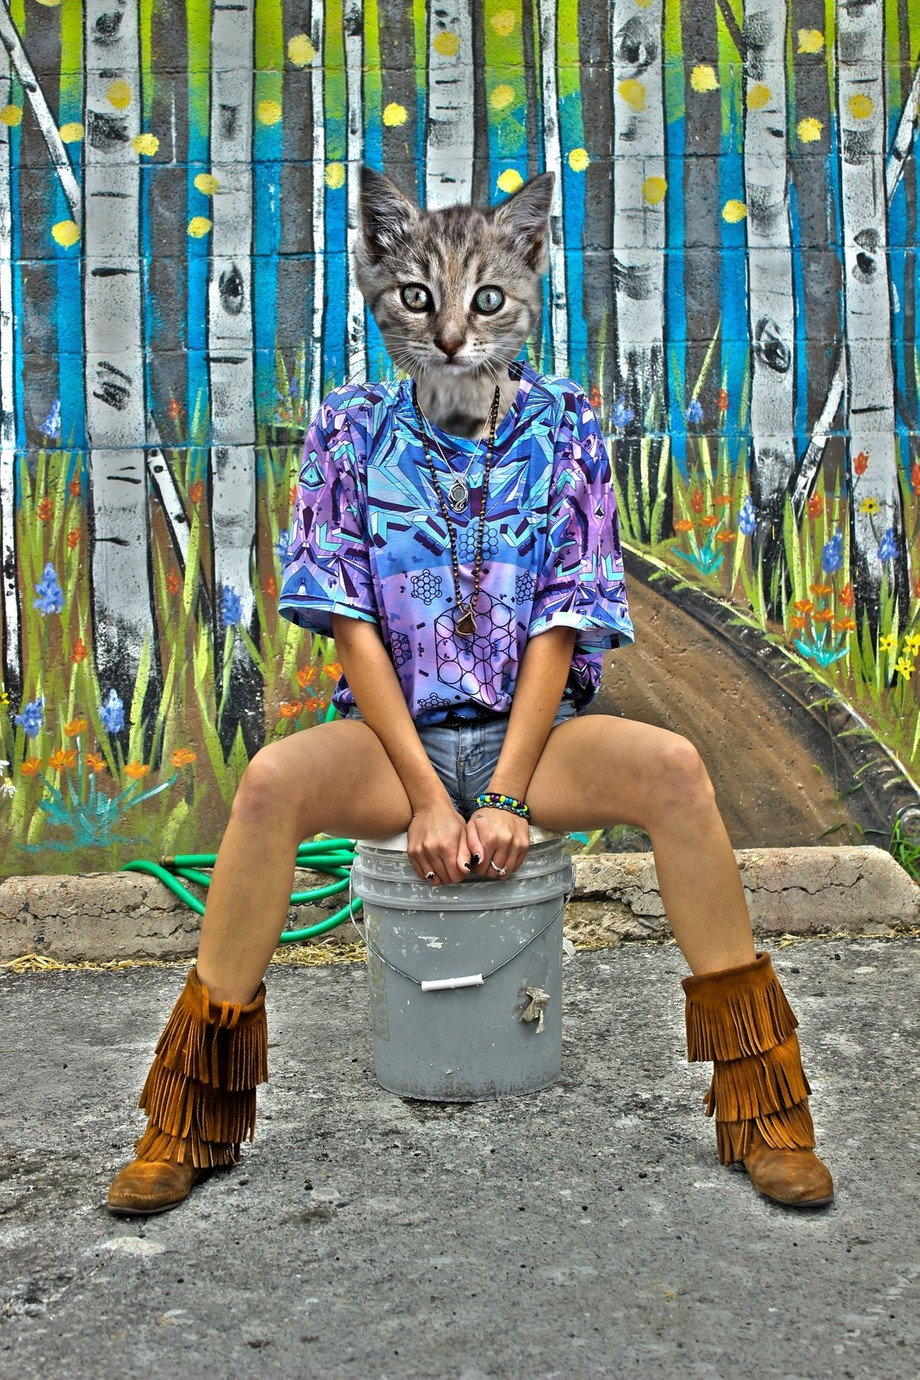 This turned out pretty cool my friend was happy that I could turn her into a kitten, as well as other big cats...the only problem I had with this one was the necklace was being difficult but its a minor detail. I did not take the picture of the kitten, this was for my first project in my Photoshop 2 class